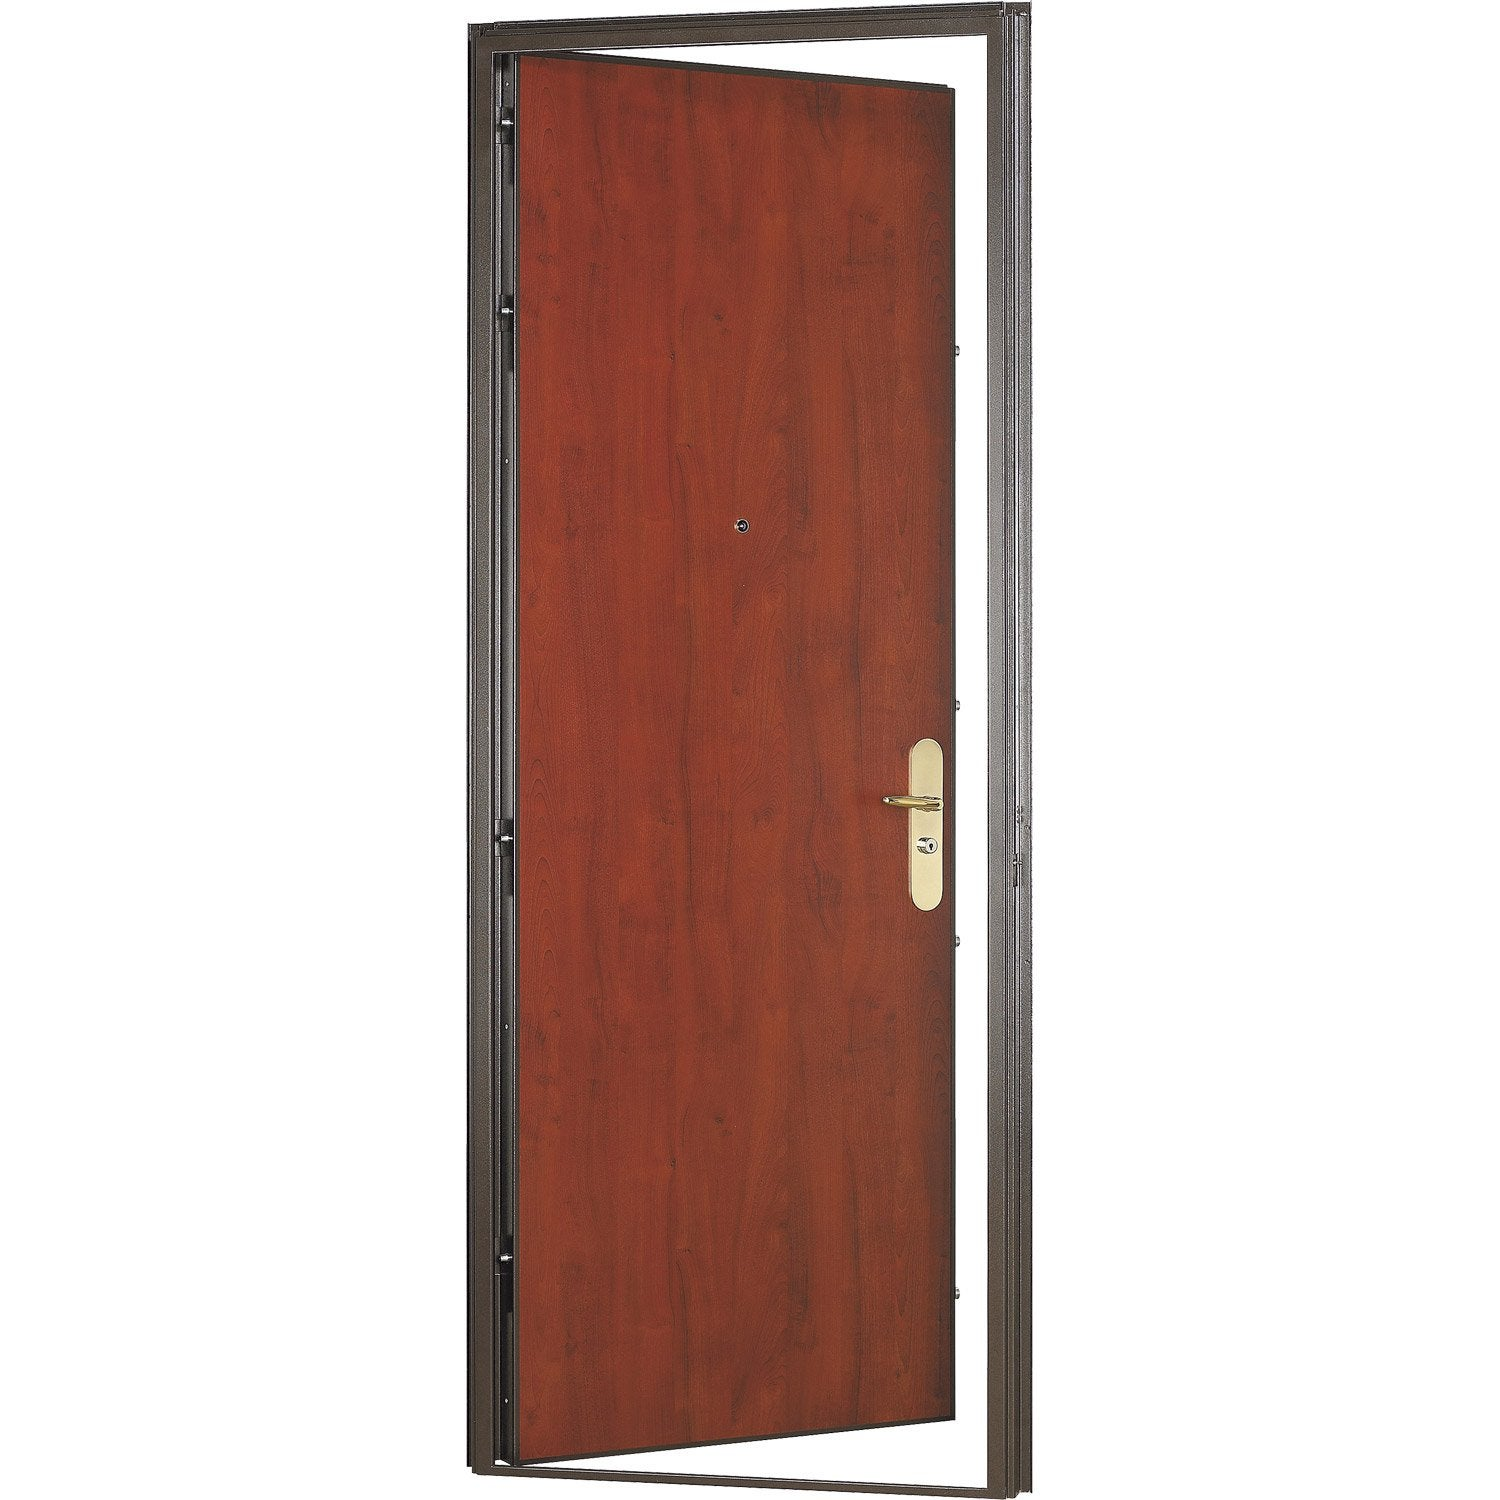 Porte blind e sur mesure diamant 2 leroy merlin for Porte entree blindee